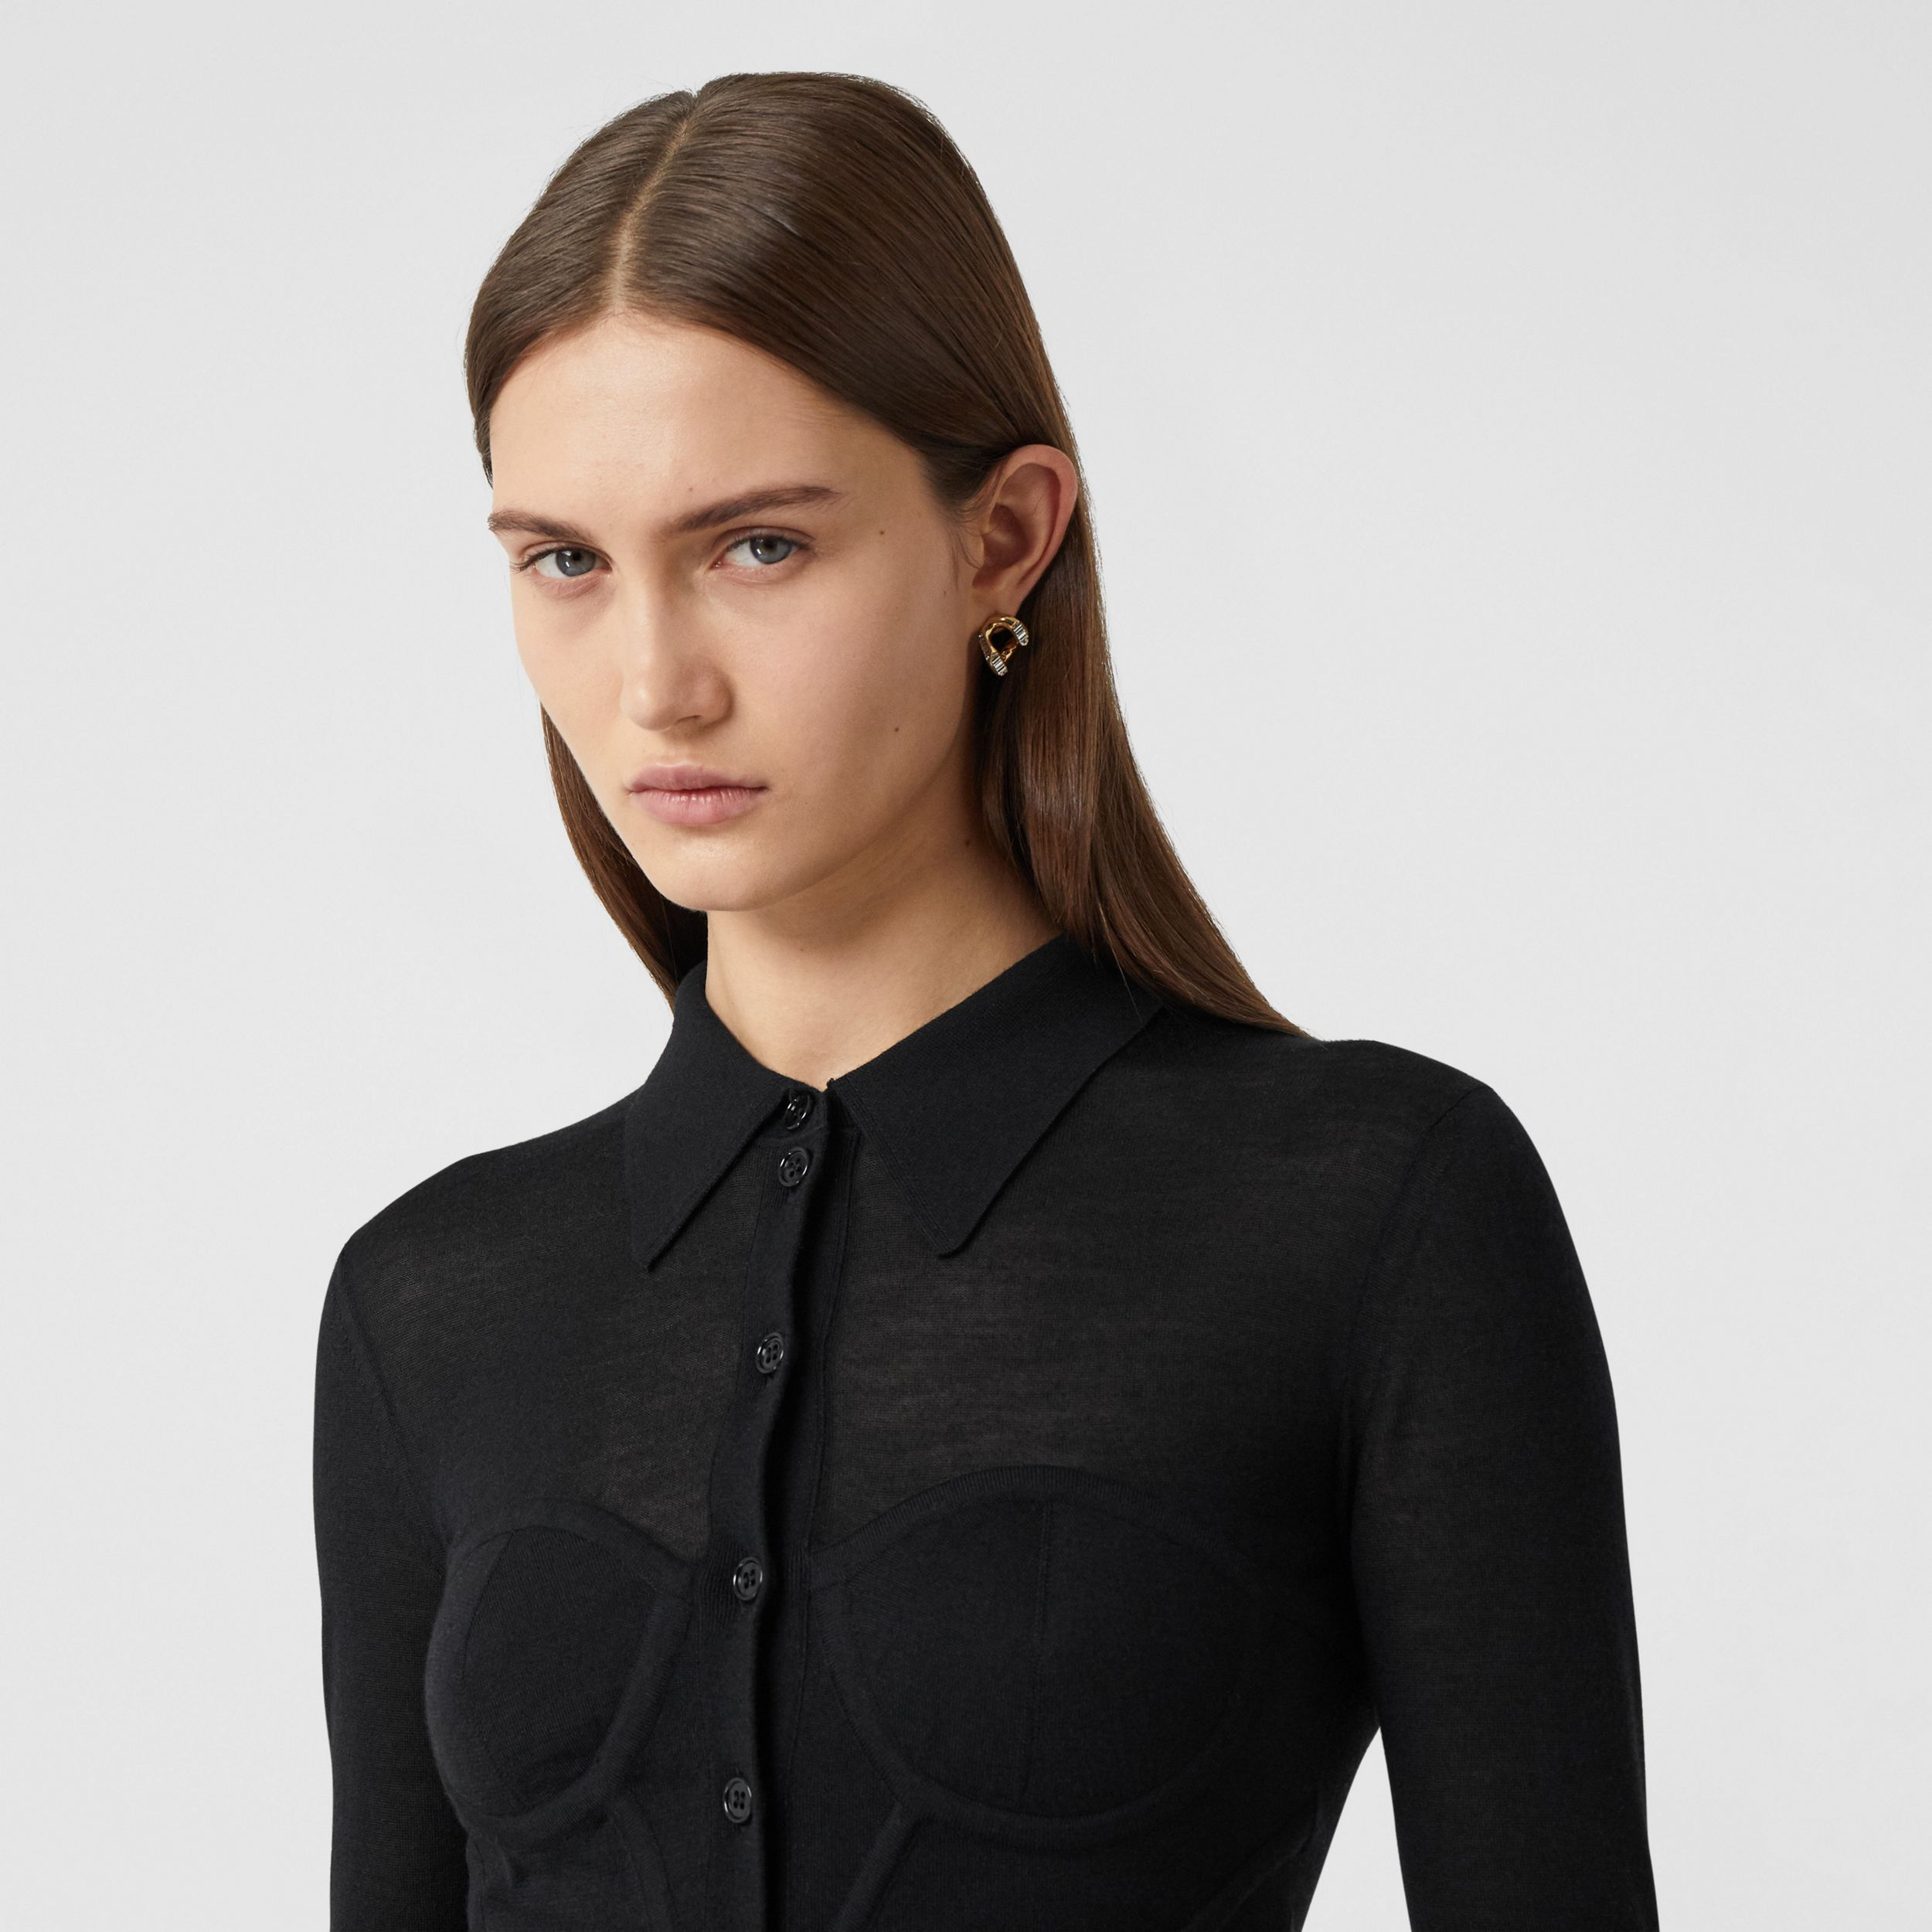 Corset Detail Knit Cashmere Silk Cardigan in Black - Women | Burberry - 2